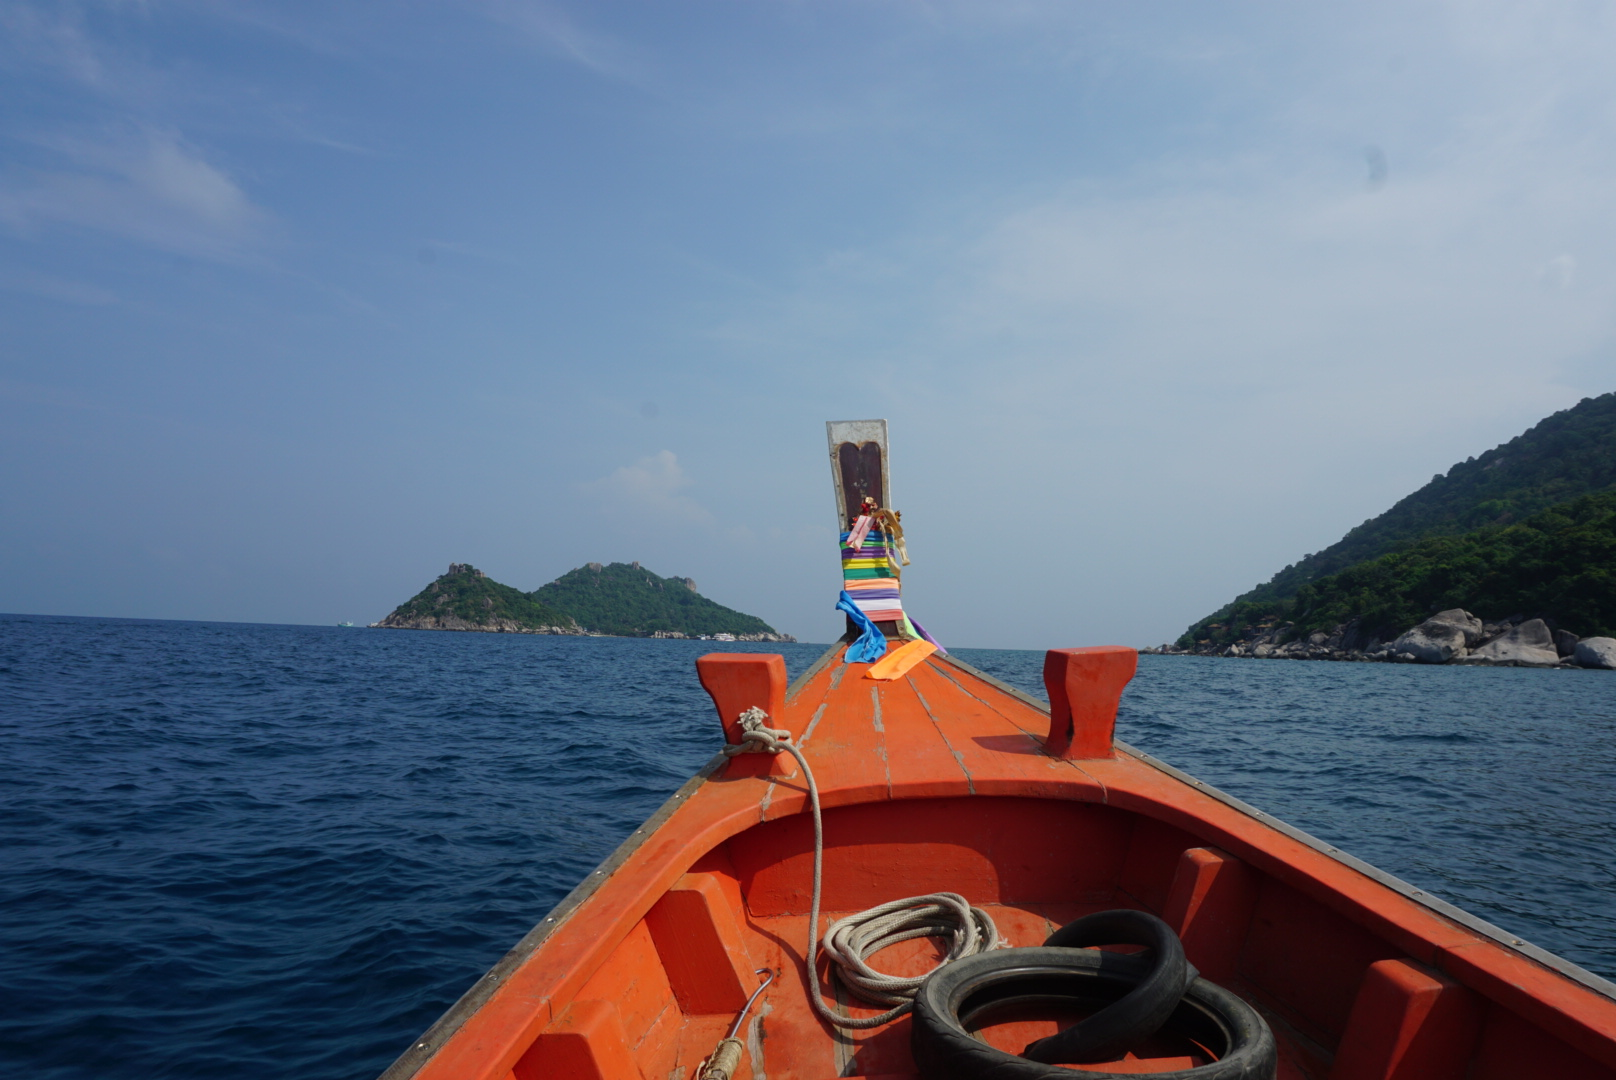 Long tail ride to the island. Koh Nang Yaun is to the left, Koh Tao is on the right.